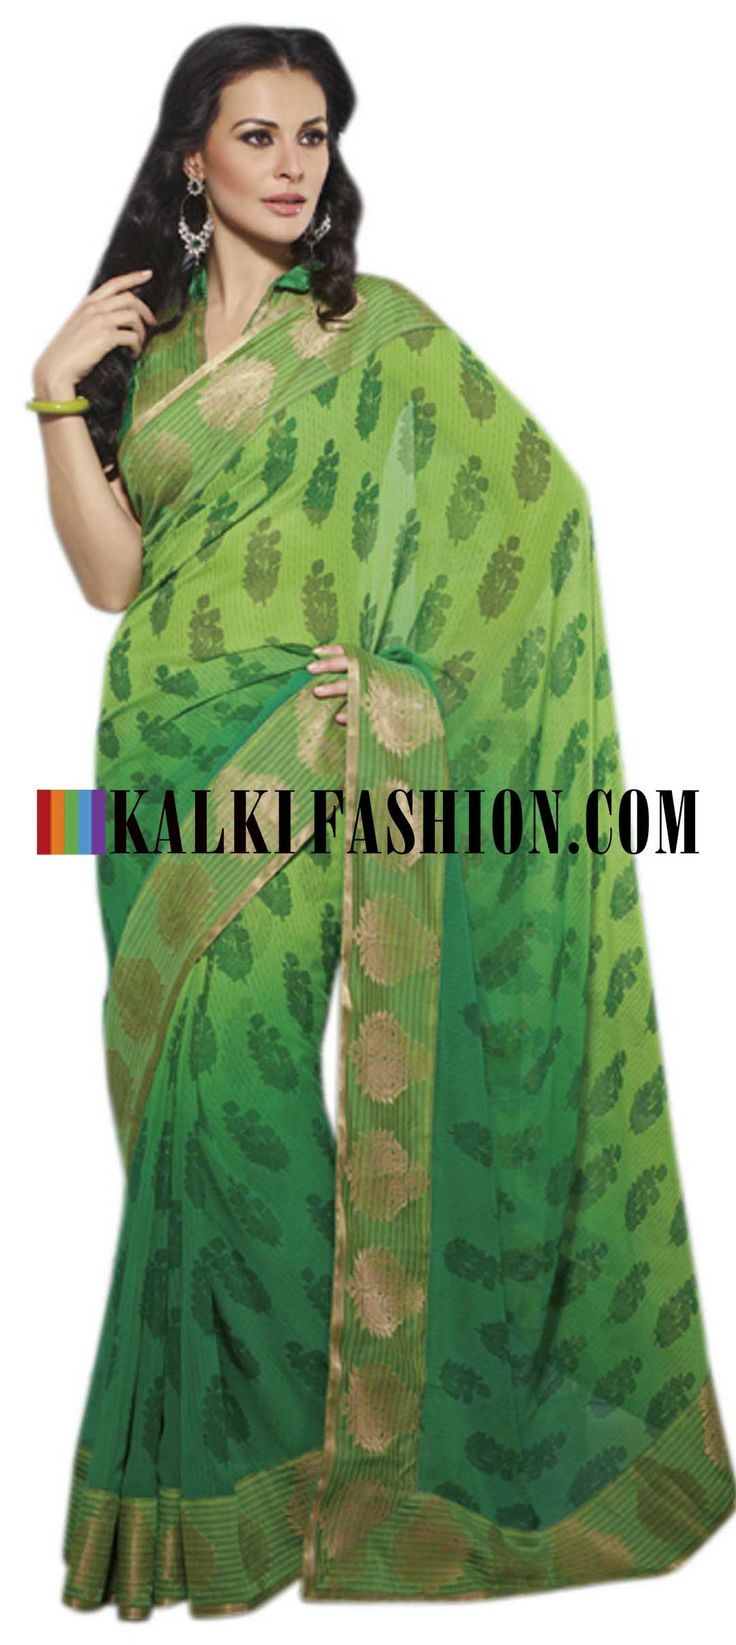 Buy Online from the link below. We ship worldwide (Free Shipping over US$100) http://www.kalkifashion.com/green-printed-saree-with-banarasi-lace-border.html Green printed saree with banarasi lace border